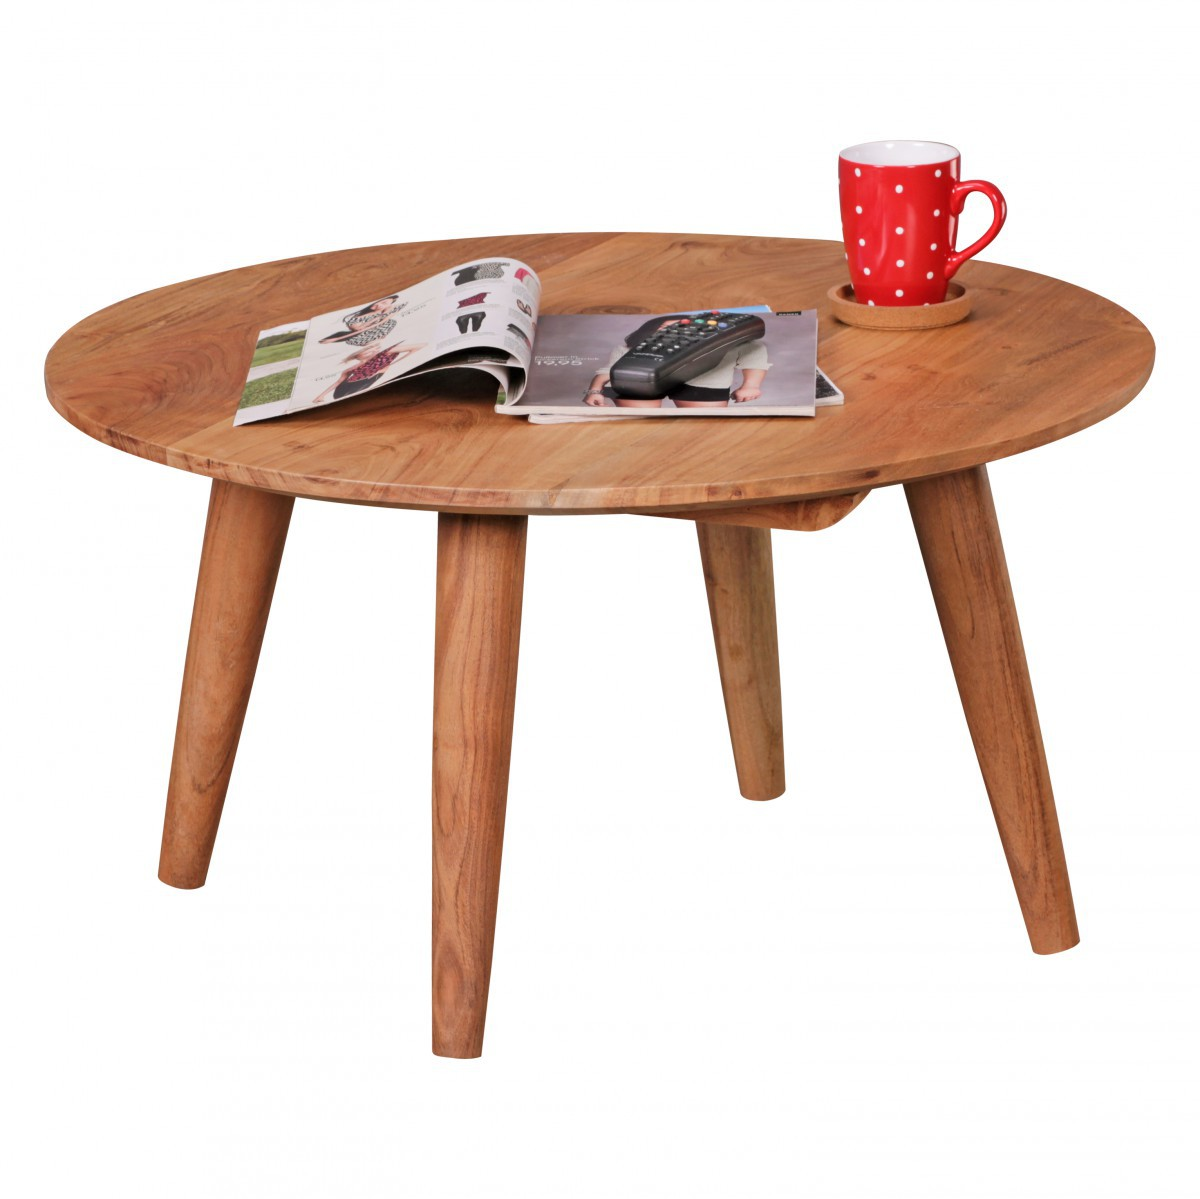 Finebuy table basse en bois massif acacia table basse for Fabriquer table basse ronde